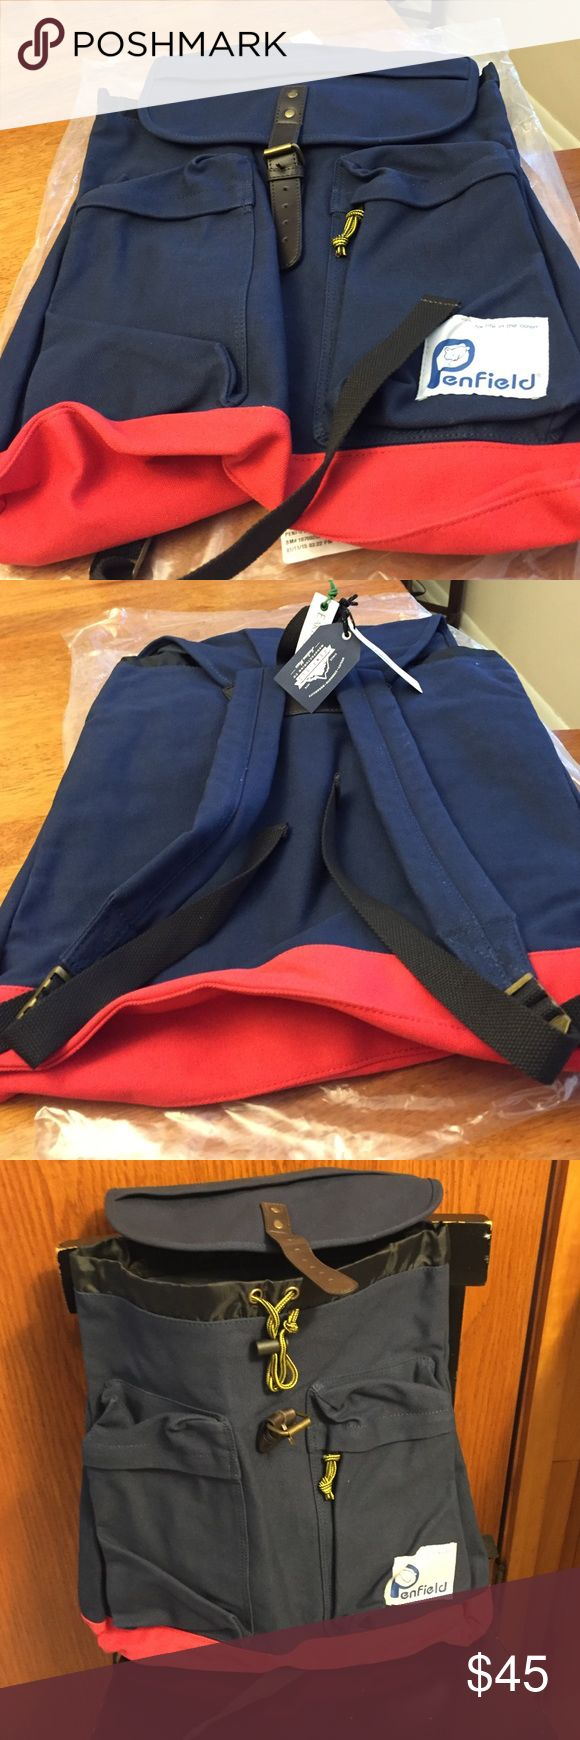 Jcrew Penfield backpack . New Sturdy durable navy with red bottom canvas material Jcrew penfield Bags Backpacks